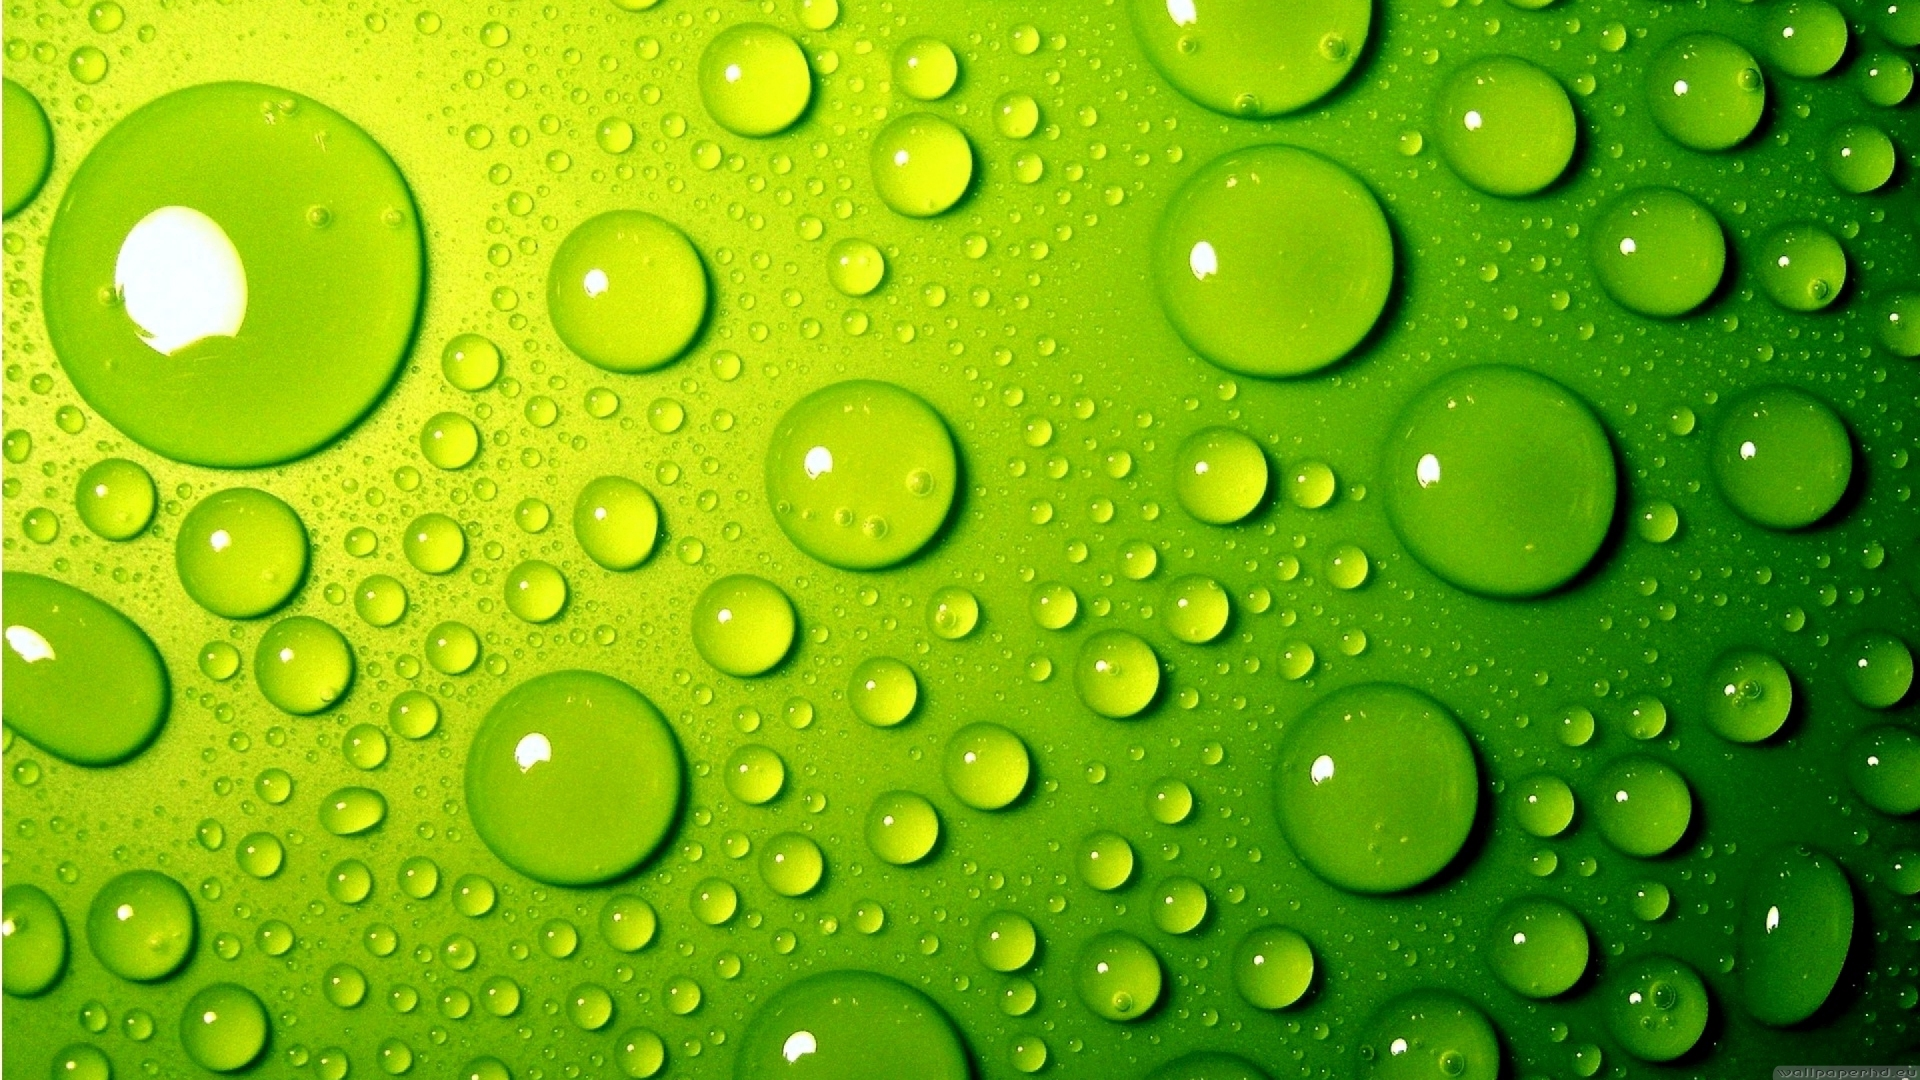 Green waves and bubbles wallpaper Abstract wallpapers